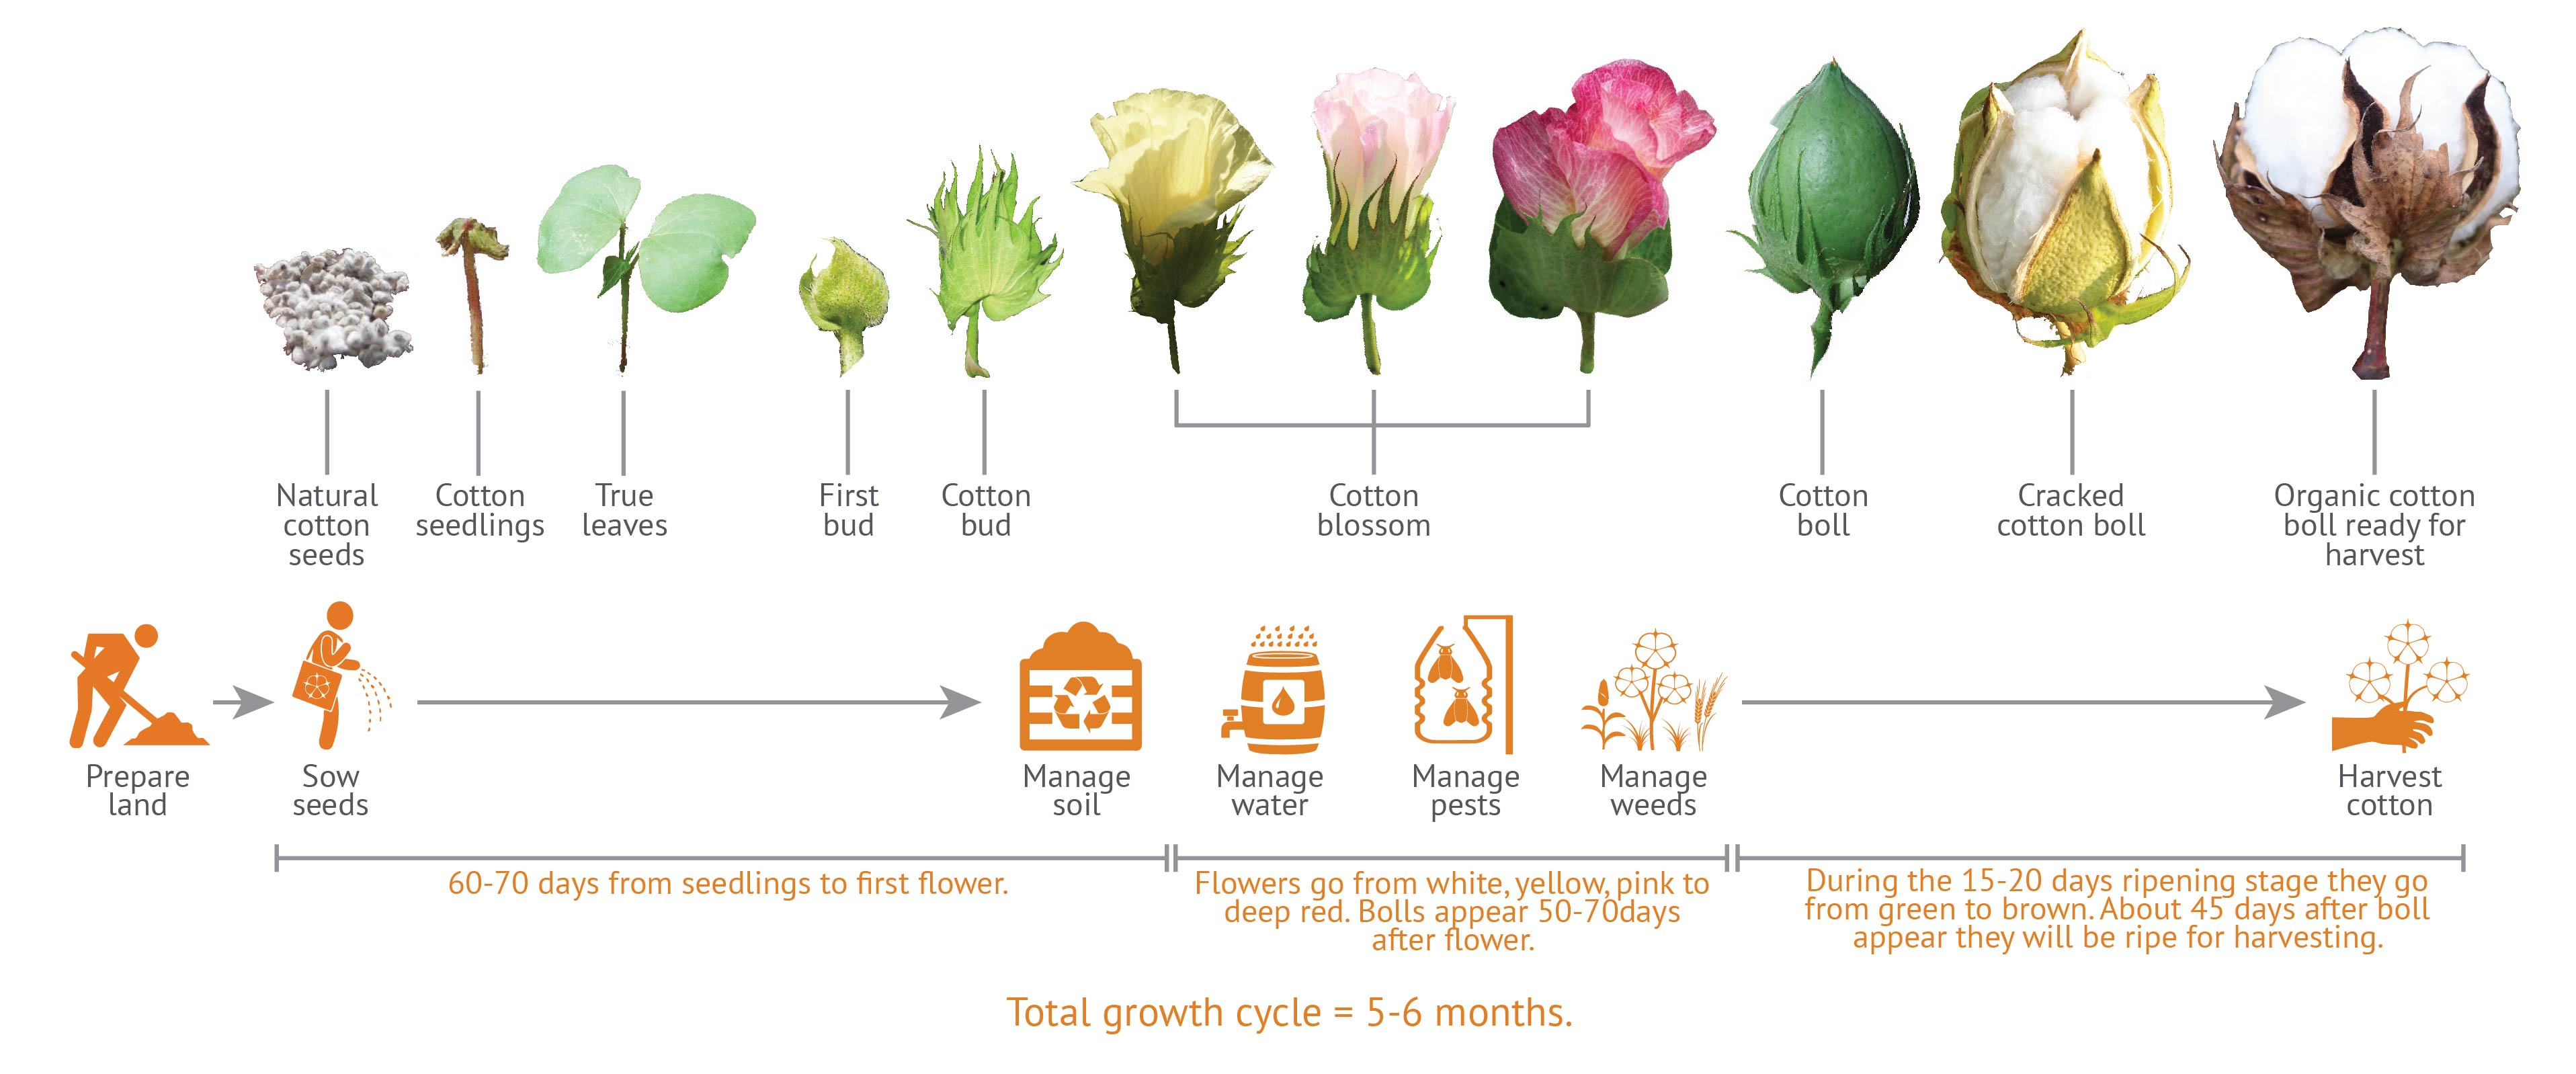 What Is The Growing Cycle Like For Organic Cotton